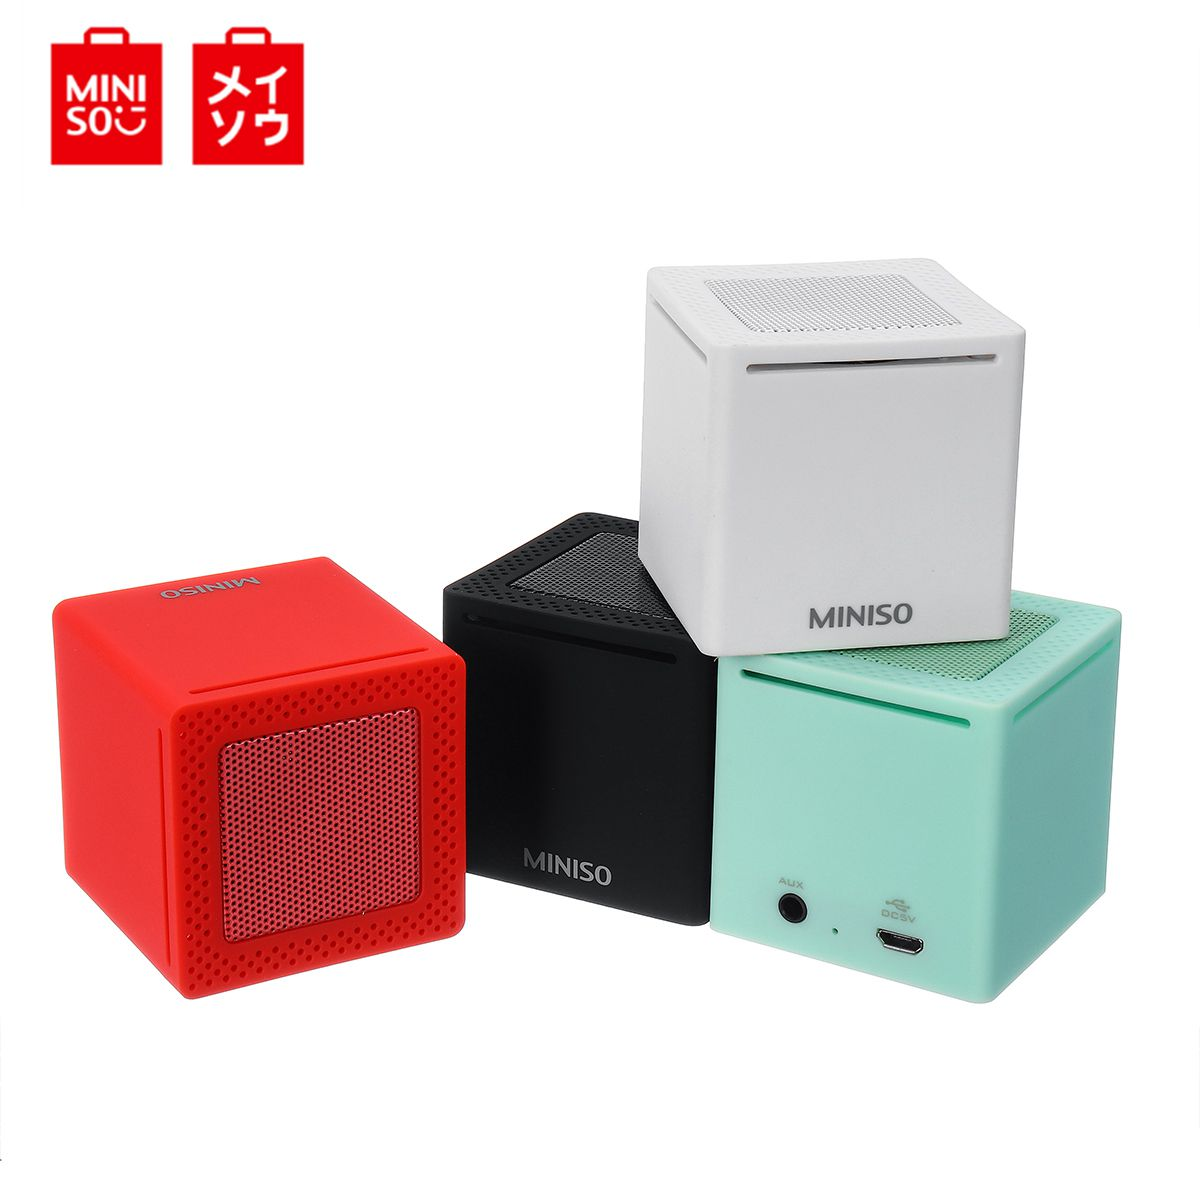 Globle Version Miniso Portable Bluetooth Speaker Mini Wireless Loudspeakers Speakers For Phone Computer Stereo Music Outdoor Portable Speakers Aliexpress